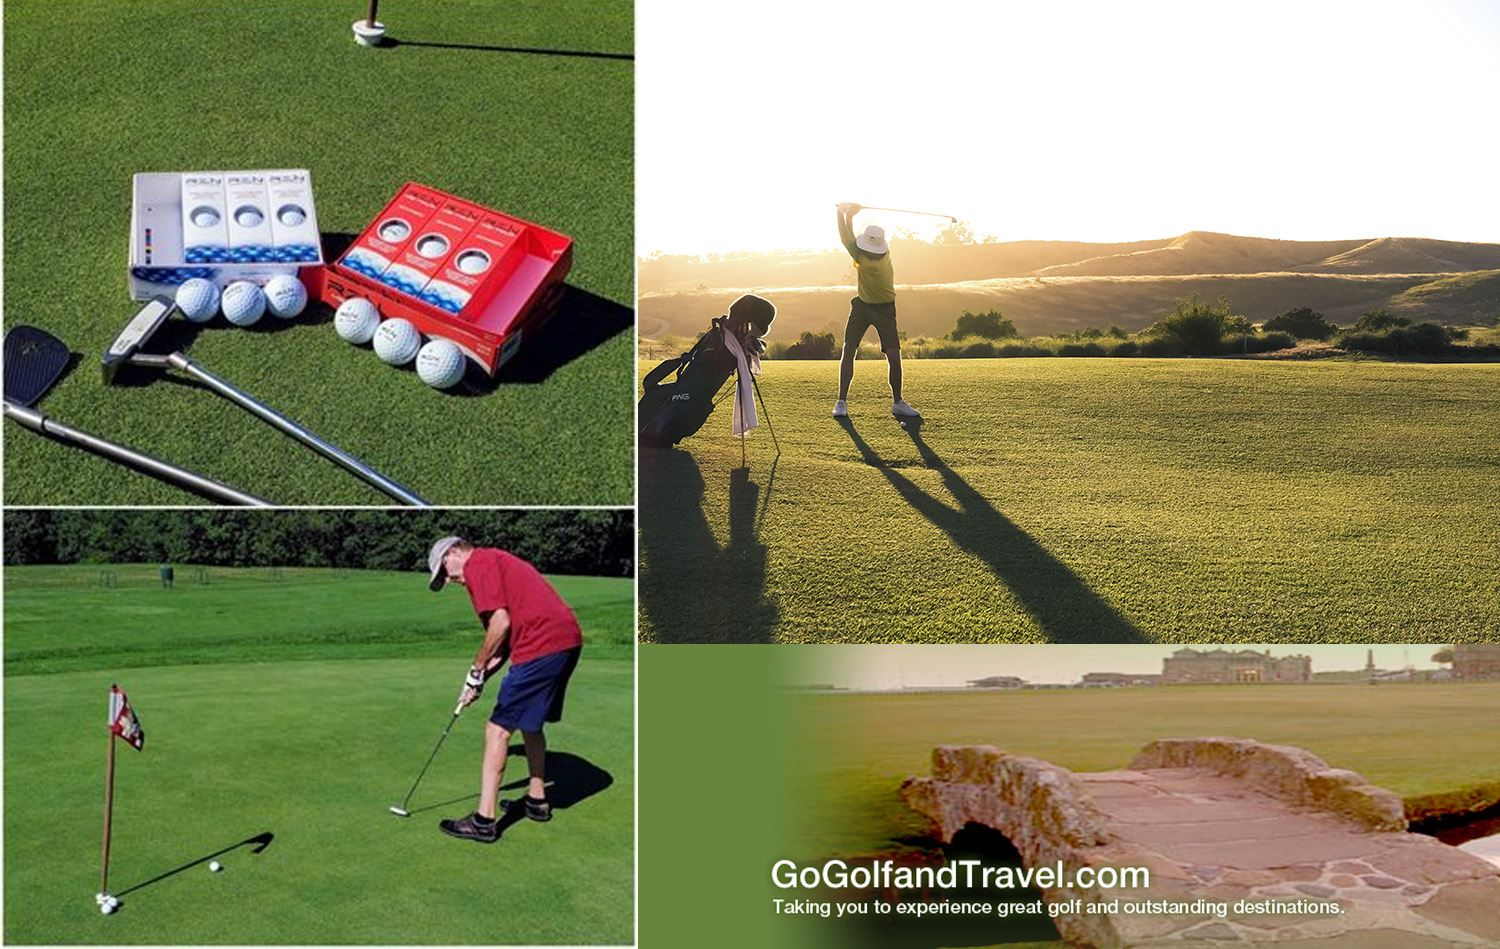 Review of the RZN Distance and MS-Tour Golf Balls By: GoGolfandTravel.com